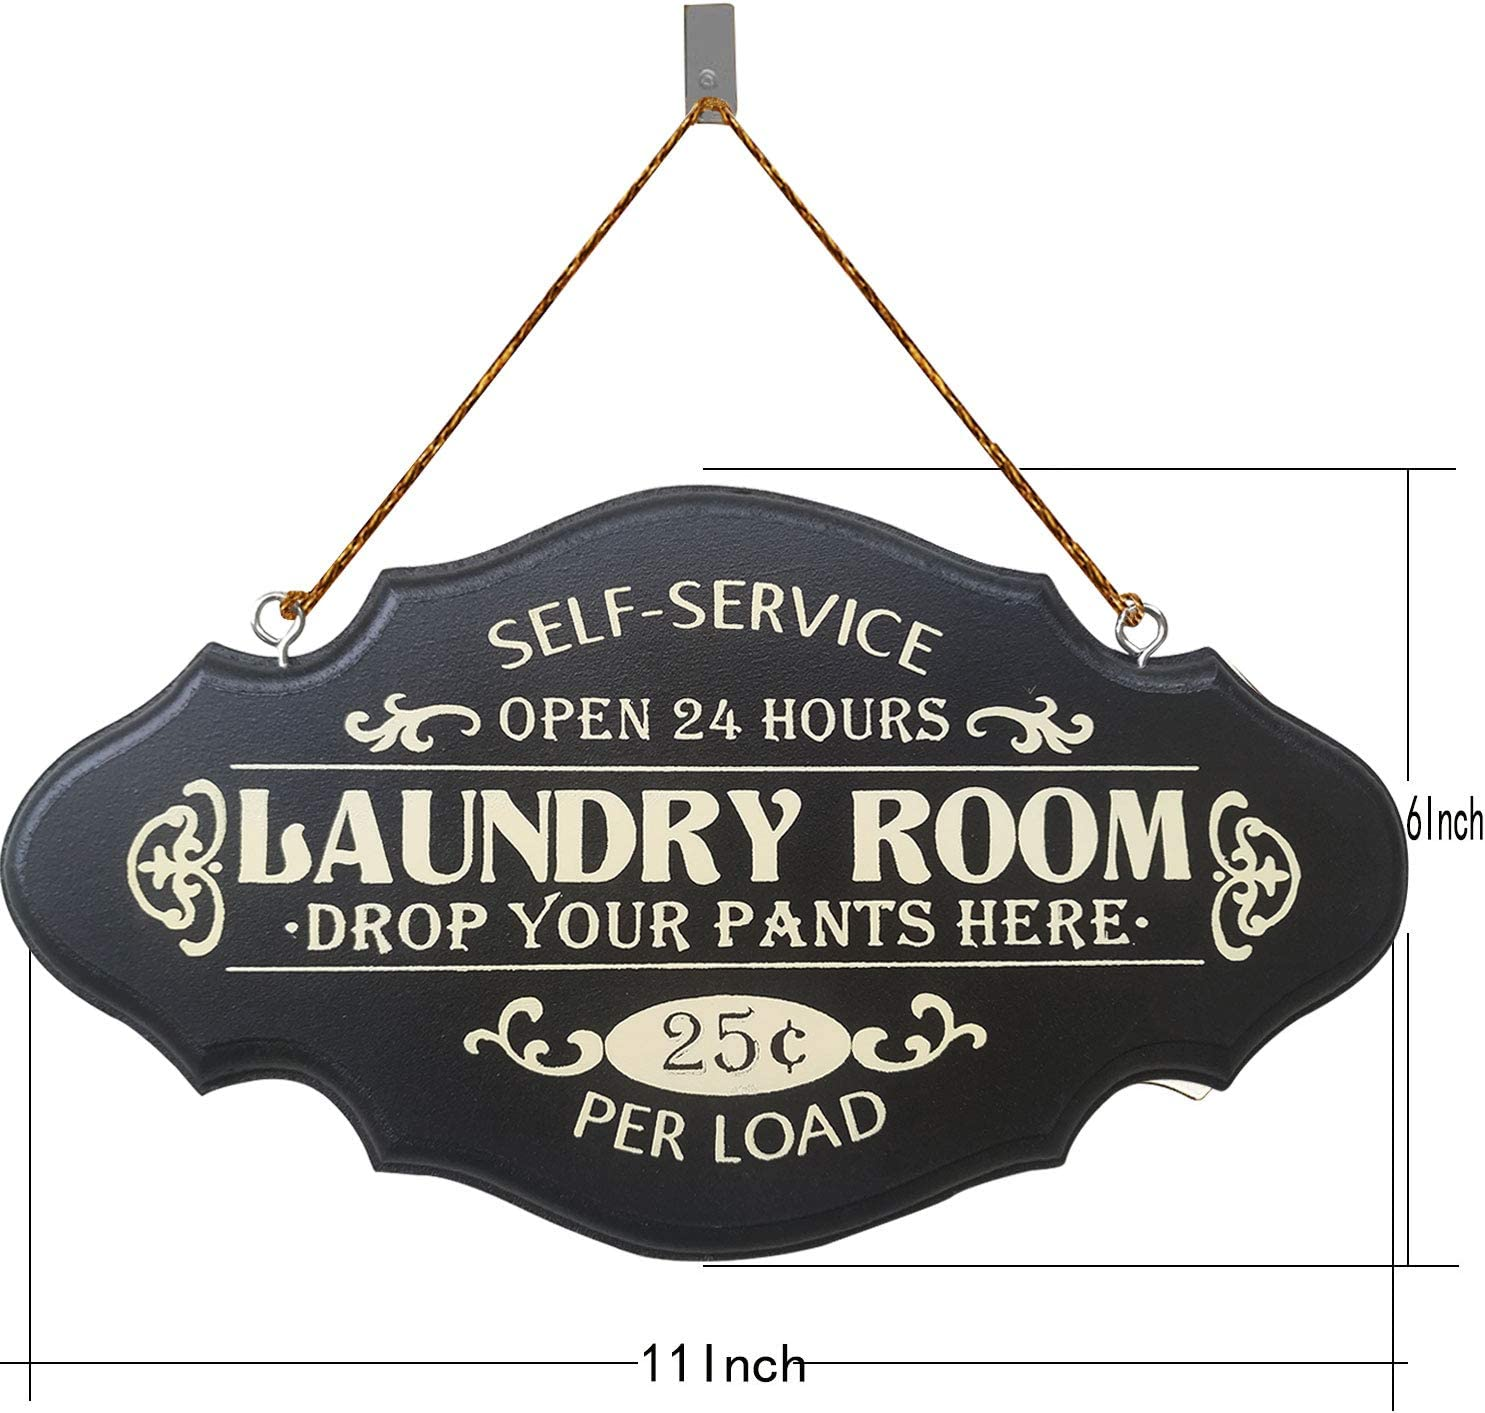 Laundry Room Decorative Painted Wooden Wall Art Sign 4x12 with burlap ribbon